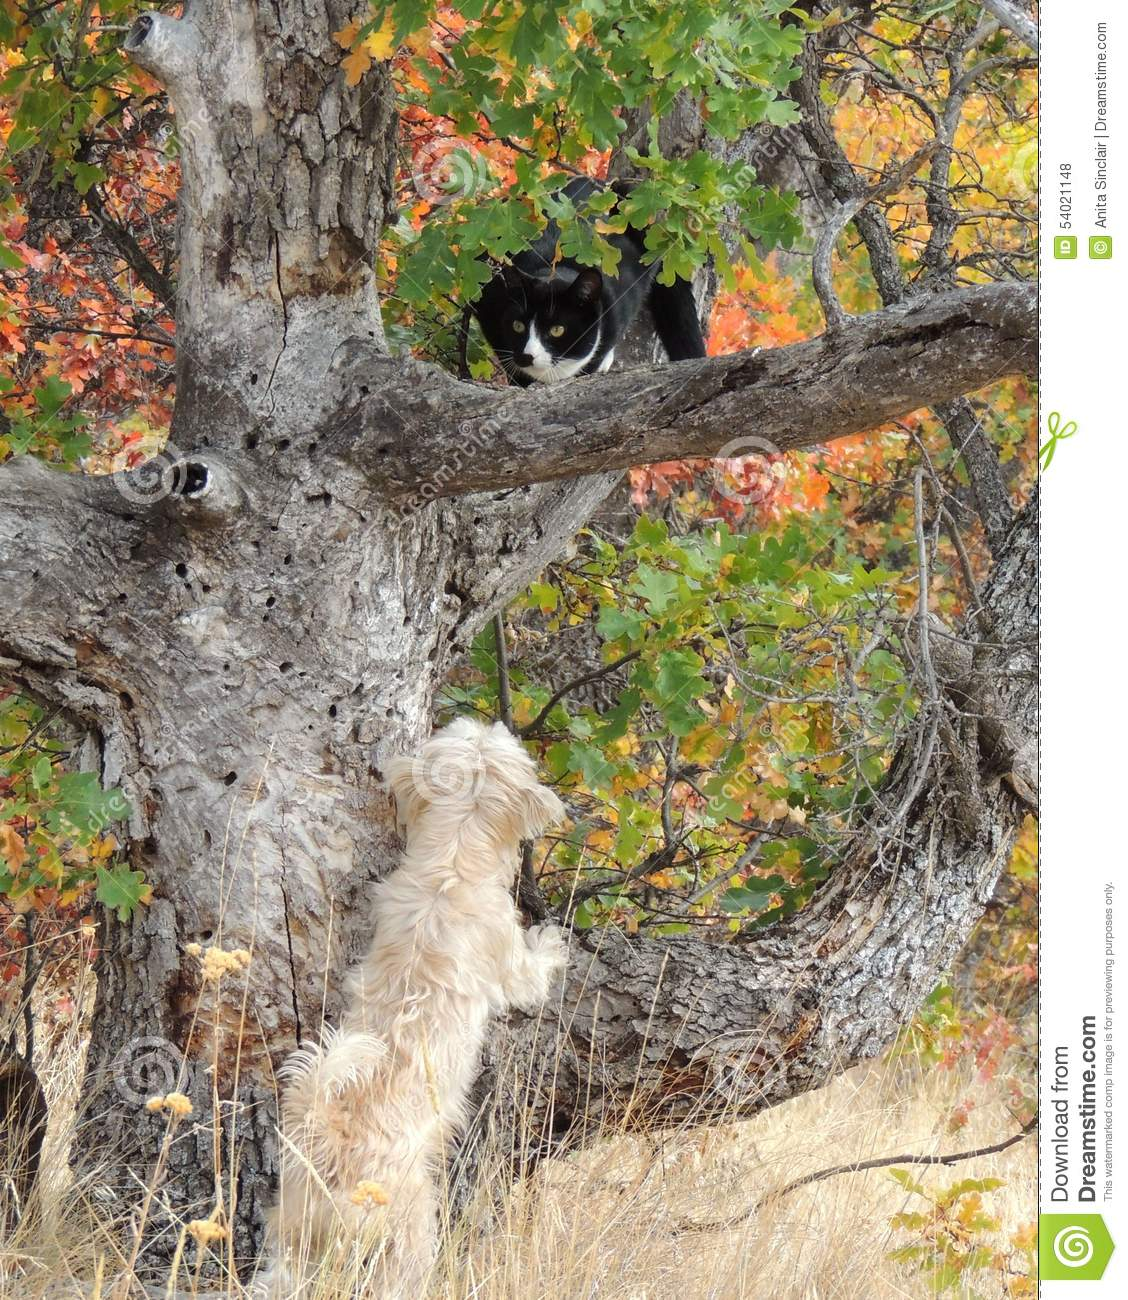 Dog Chases Cat Up Tree